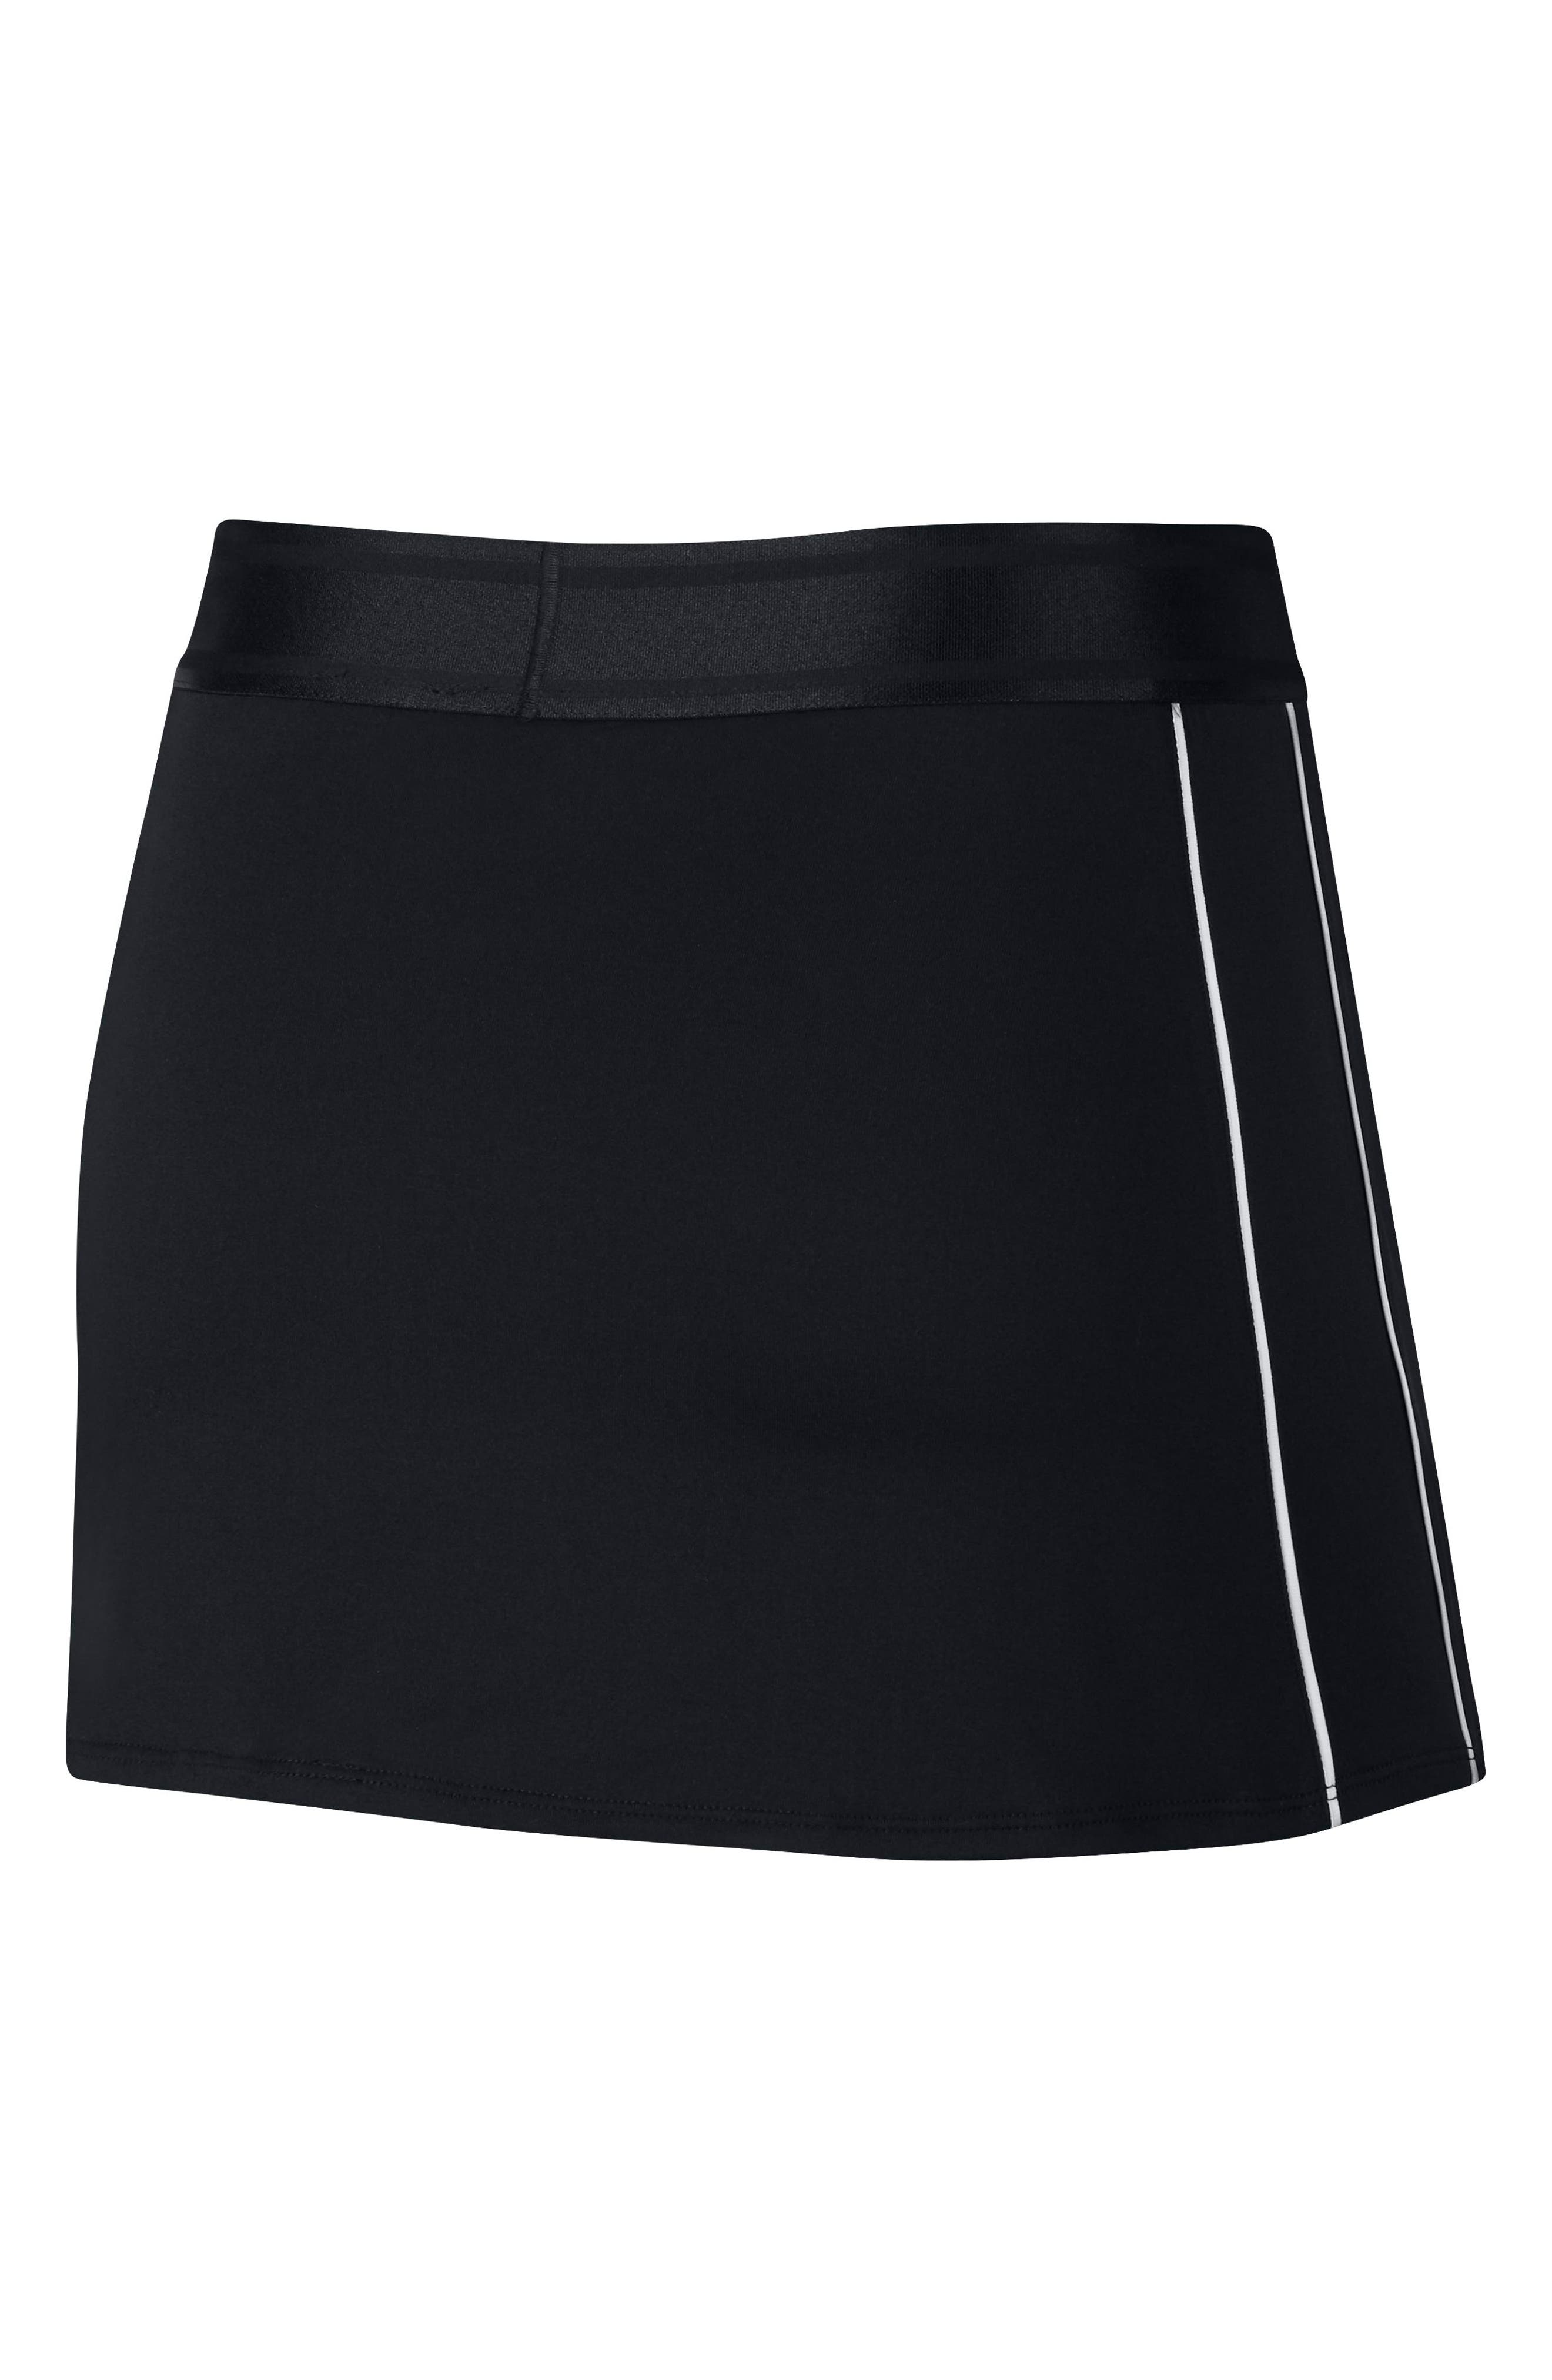 NIKE, Court Dry-FIT Tennis Skirt, Alternate thumbnail 8, color, BLACK/ WHITE/ WHITE/ BLACK